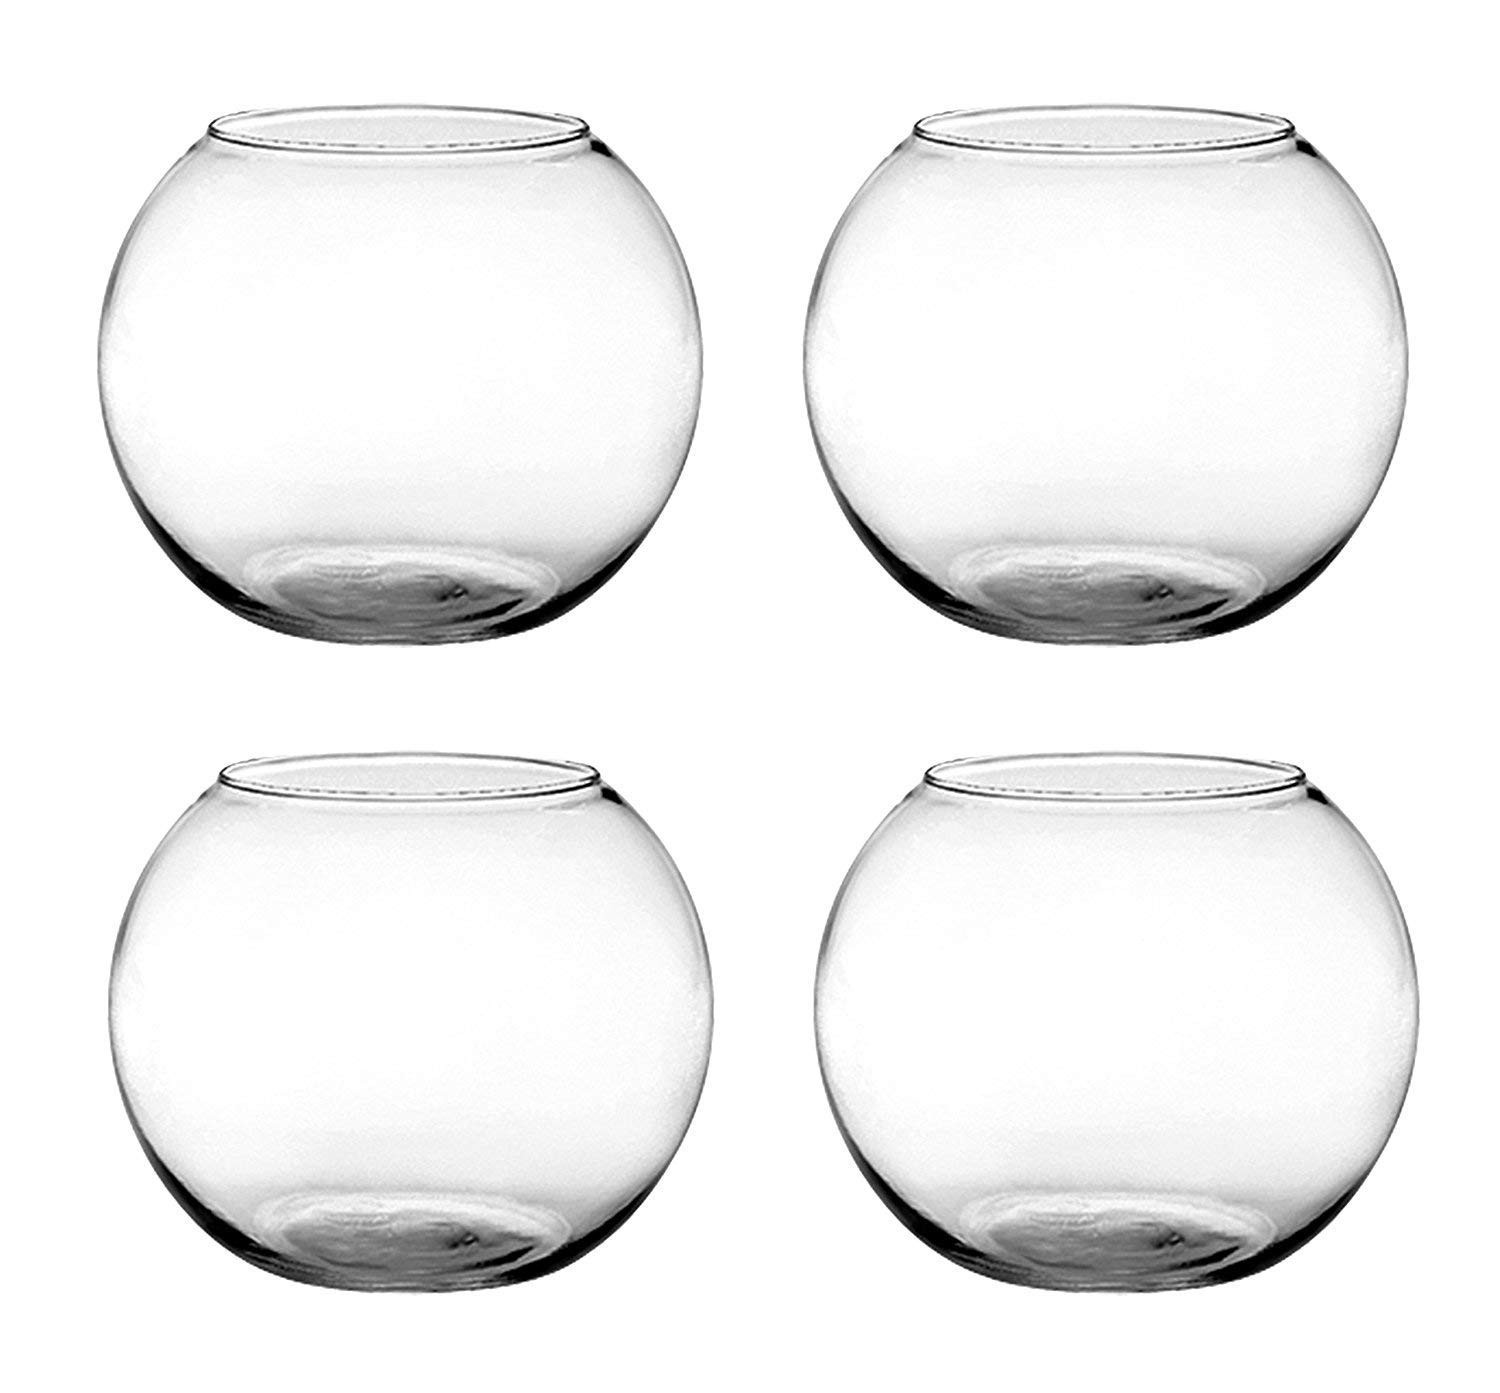 amazon home decor vases of amazon com floral supply online set of 4 6 rose bowls glass in amazon com floral supply online set of 4 6 rose bowls glass round vases for weddings events decorating arrangements flowers office or home